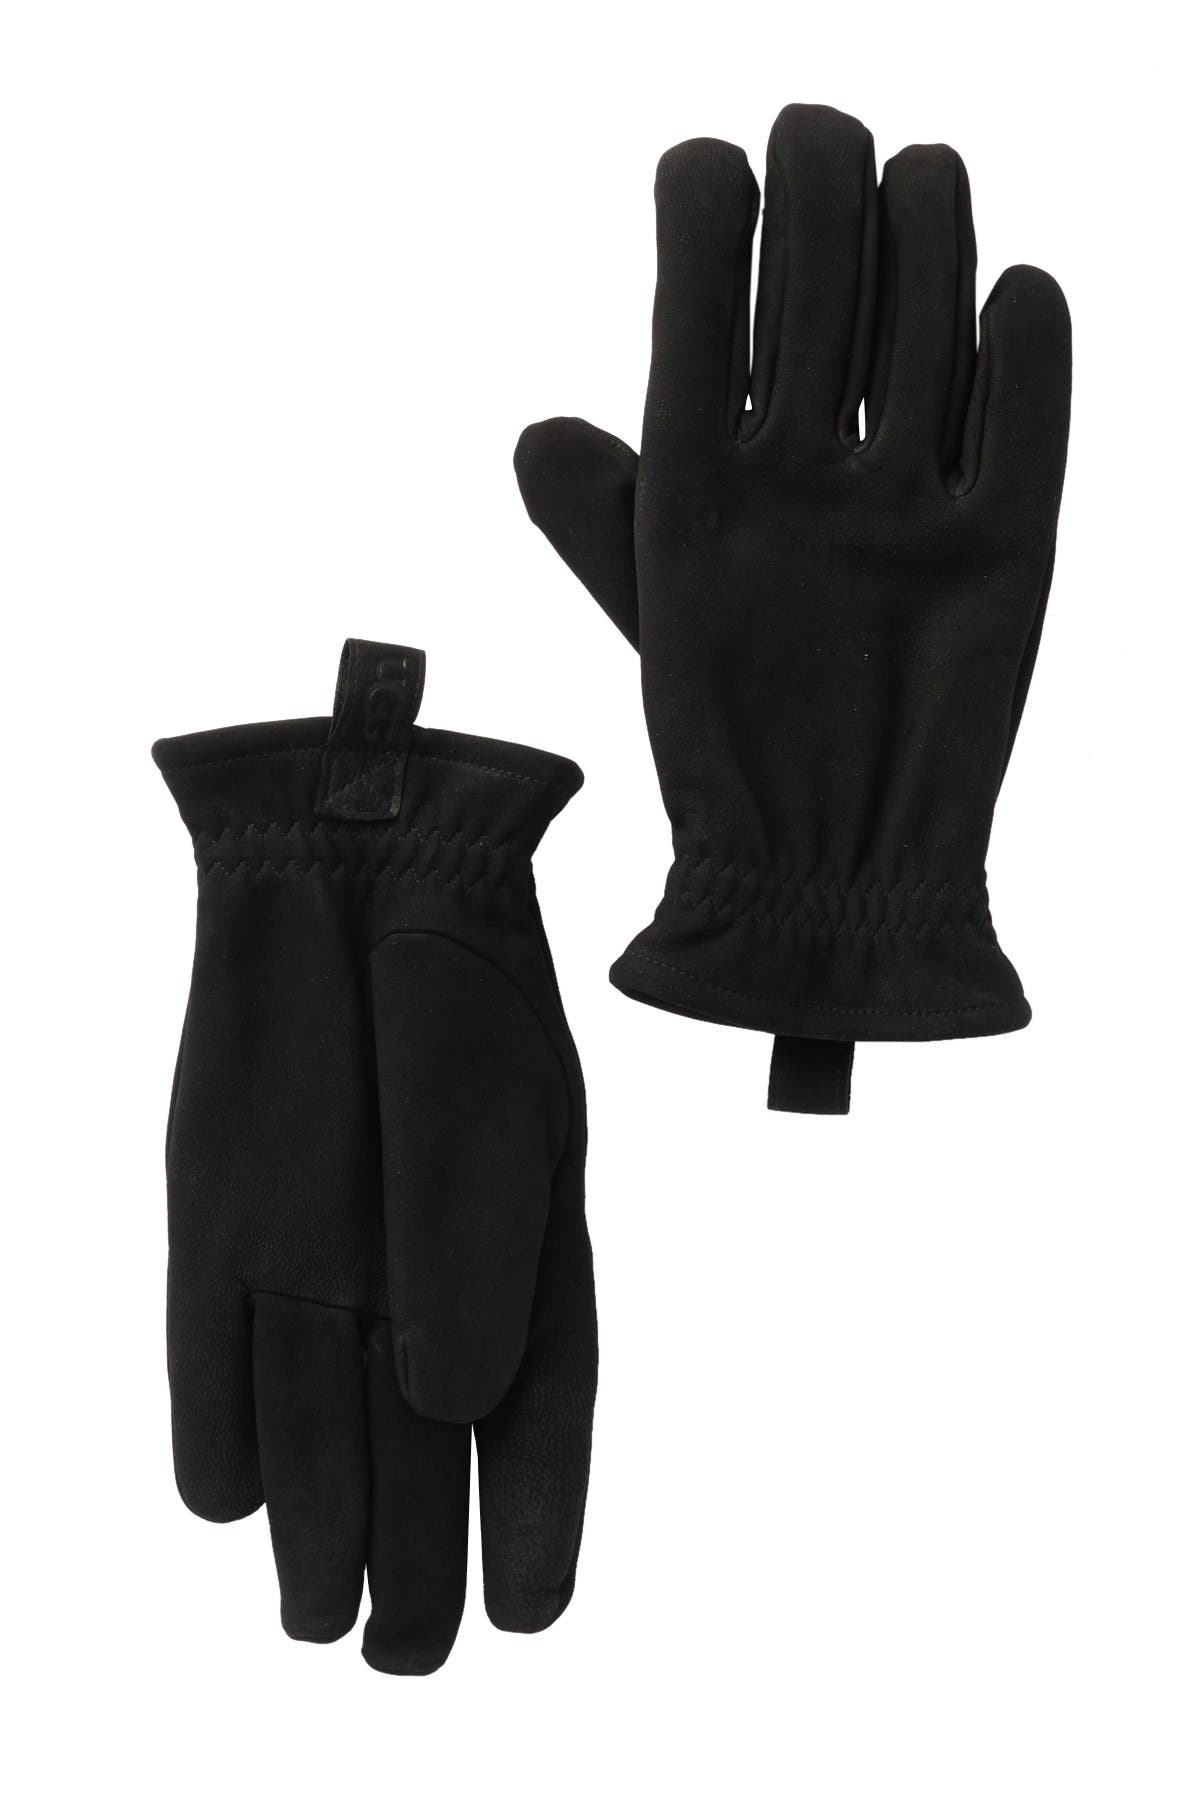 Image of UGG Suede Faux Fur Lined Gloves